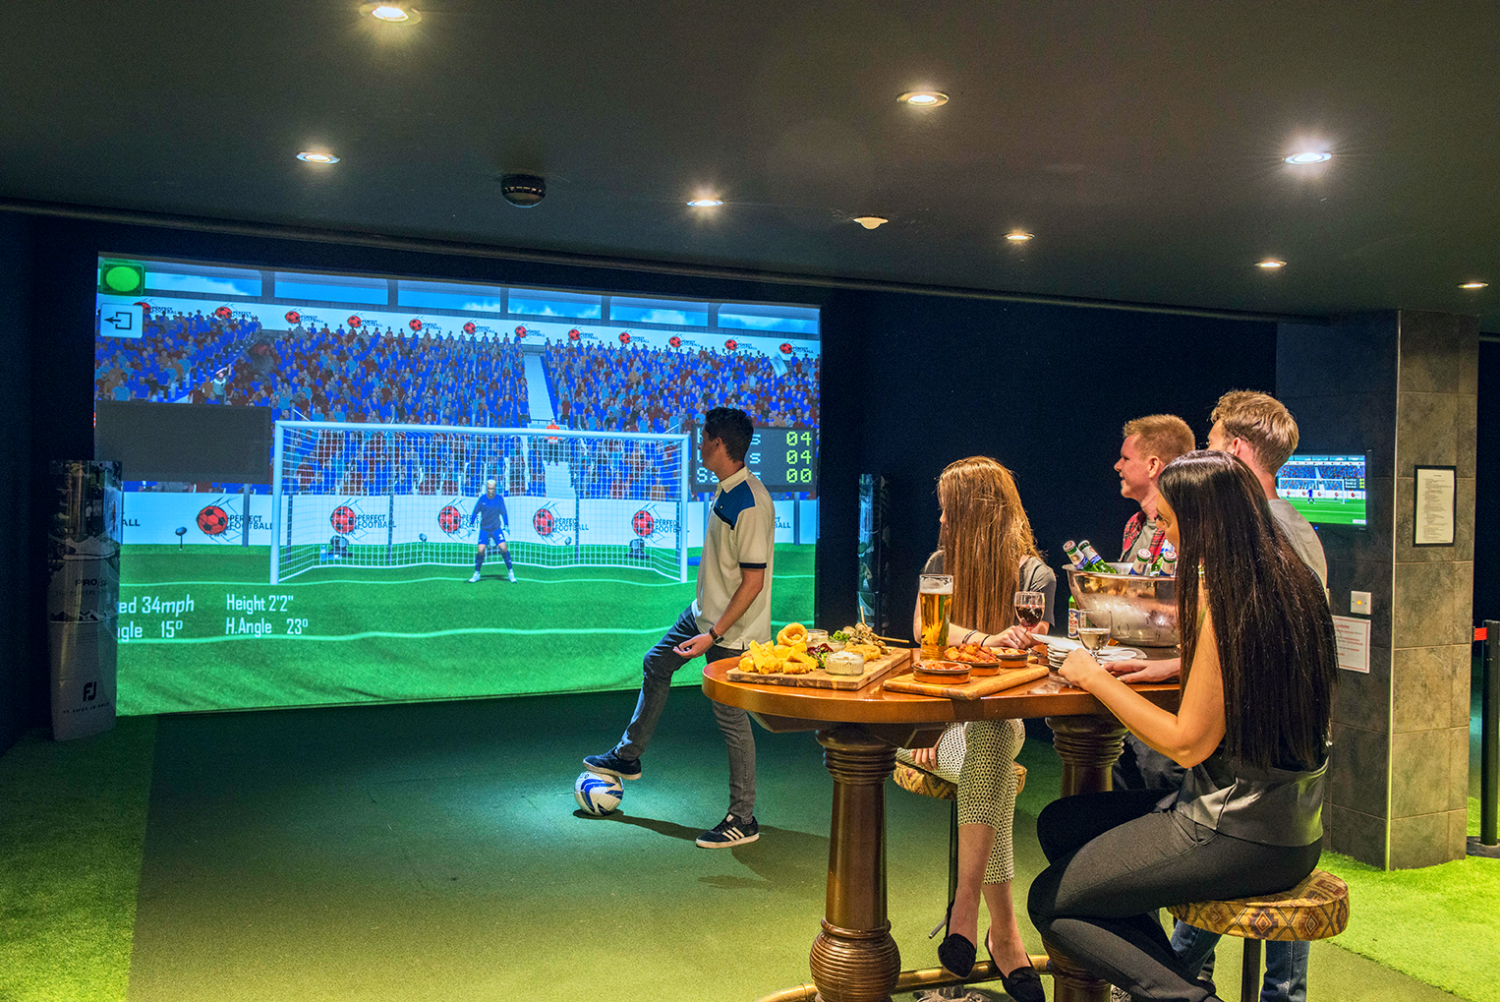 Things to do in Cardiff - Golf simulators South Wales - A group of teenagers eating pub grub as they watch friend play with the sport simulator